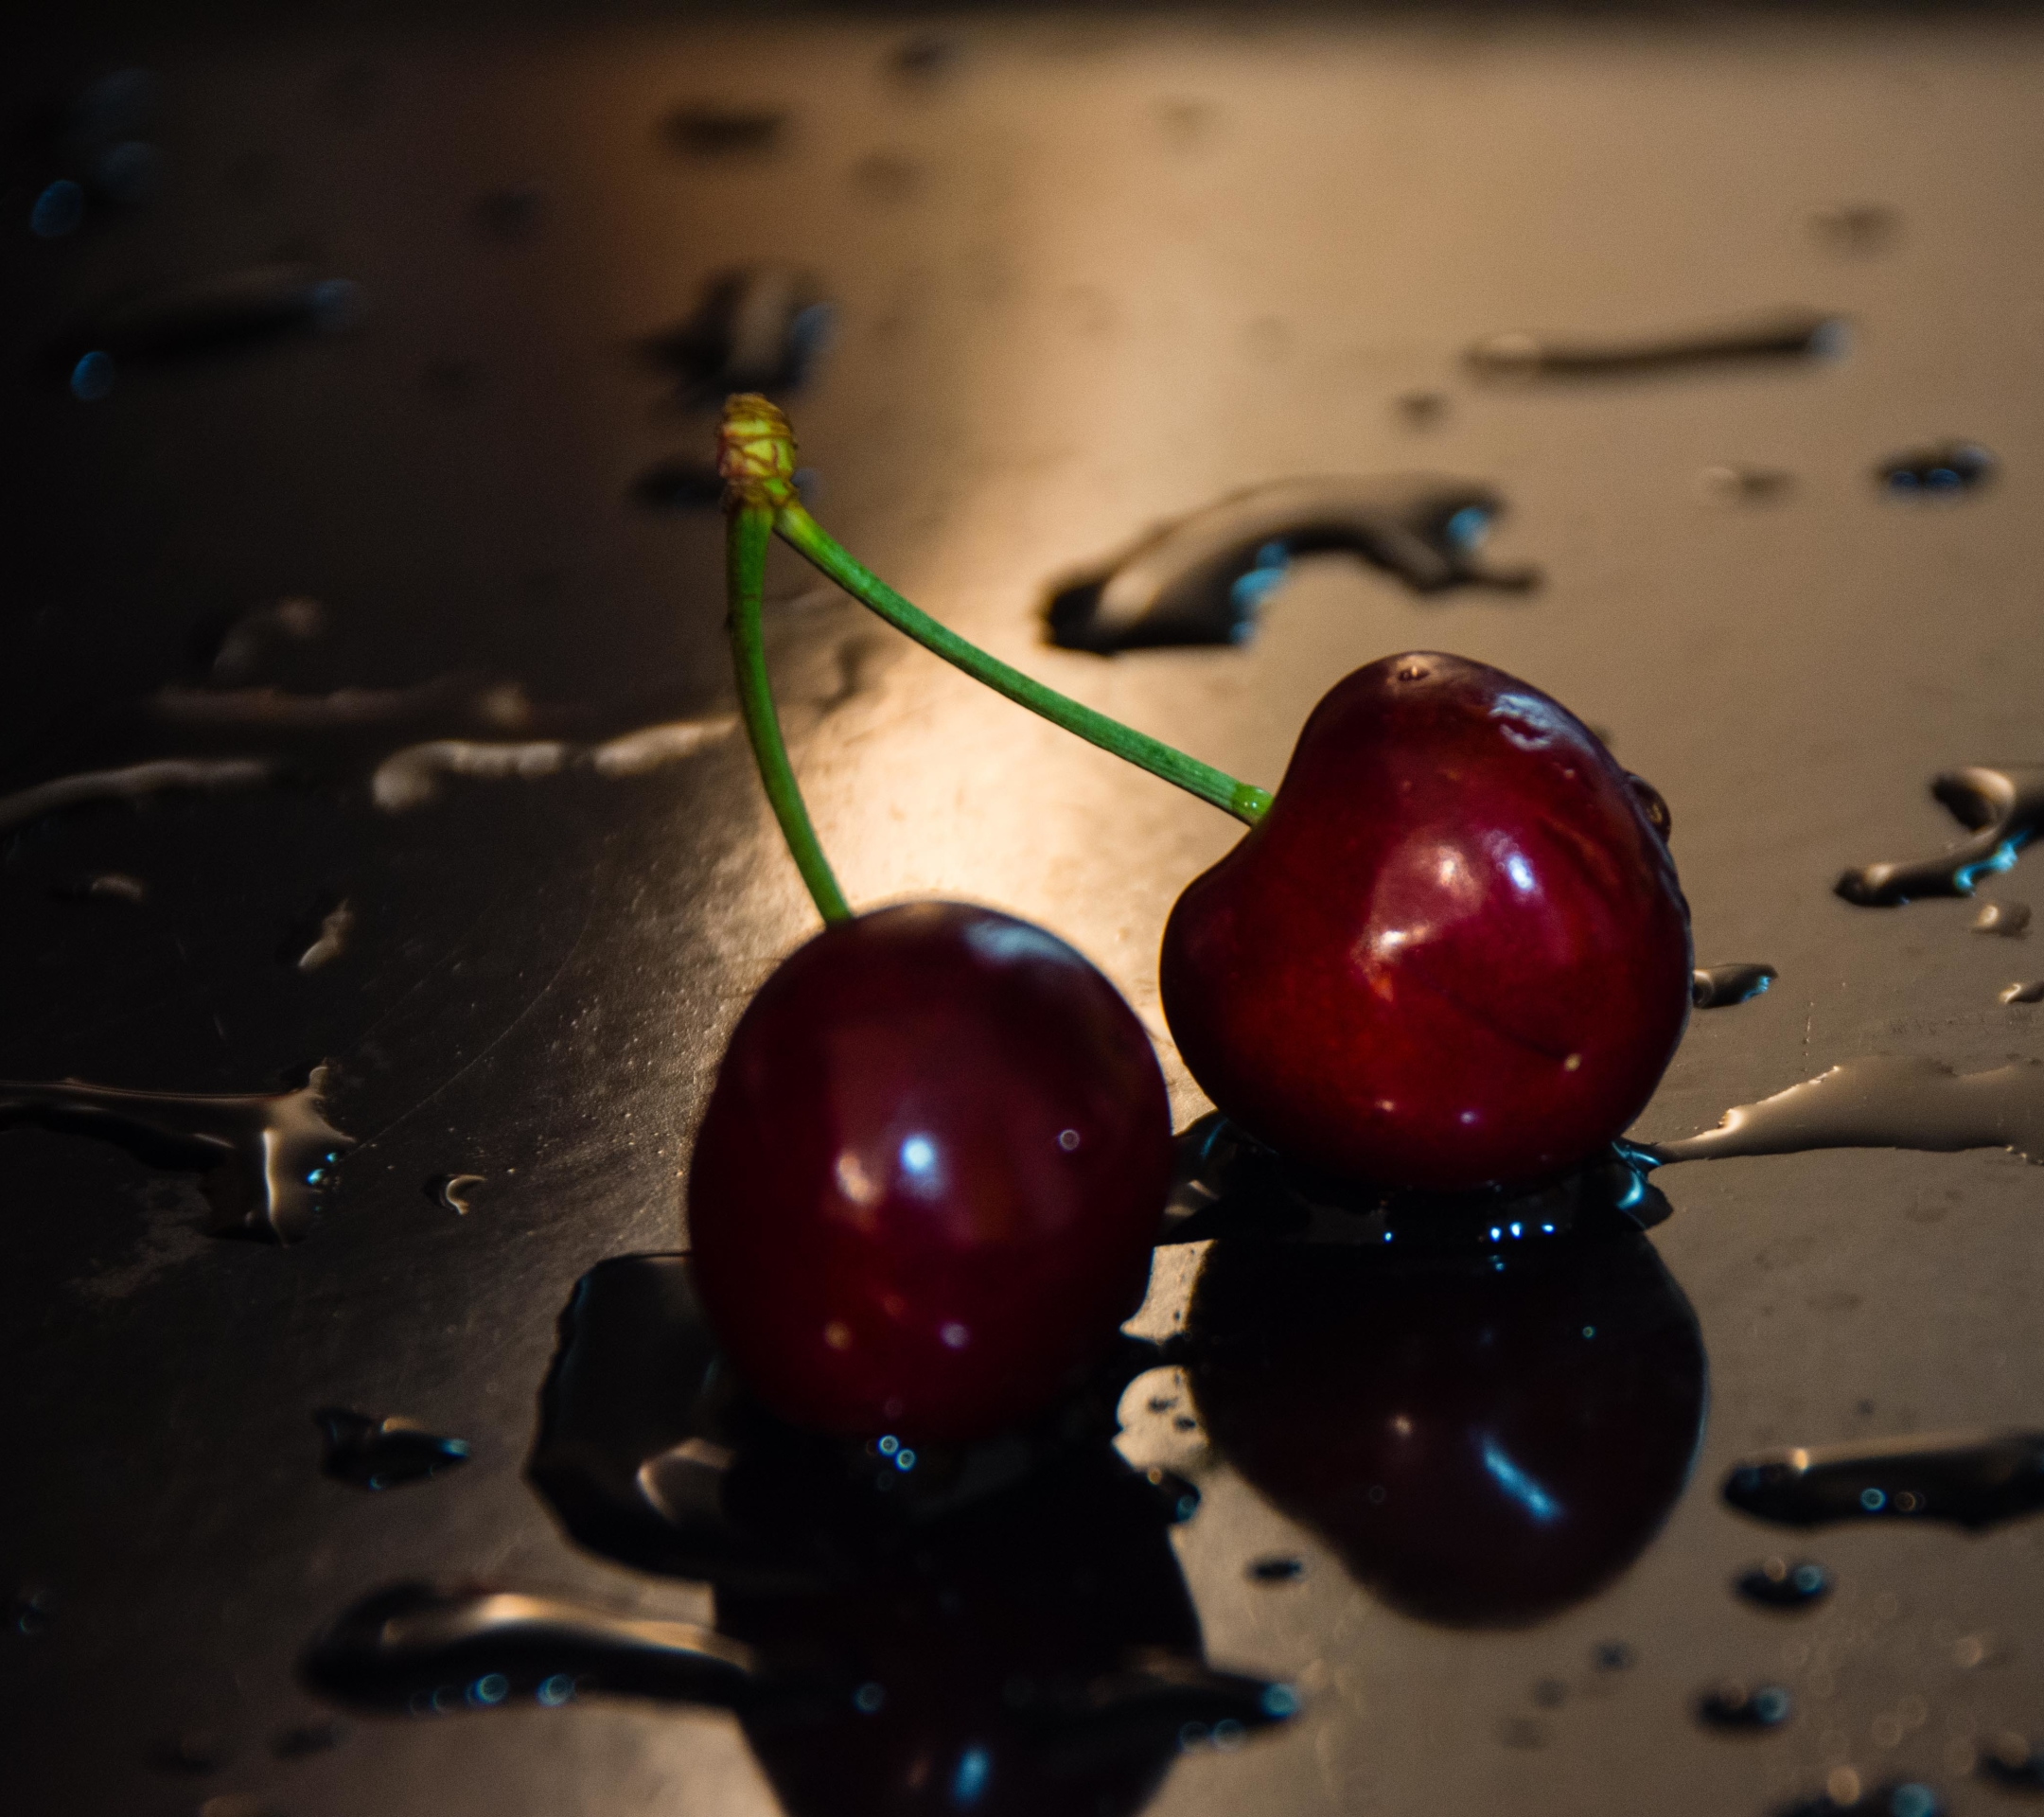 Food Cherry 2160x1920 Mobile Wallpaper